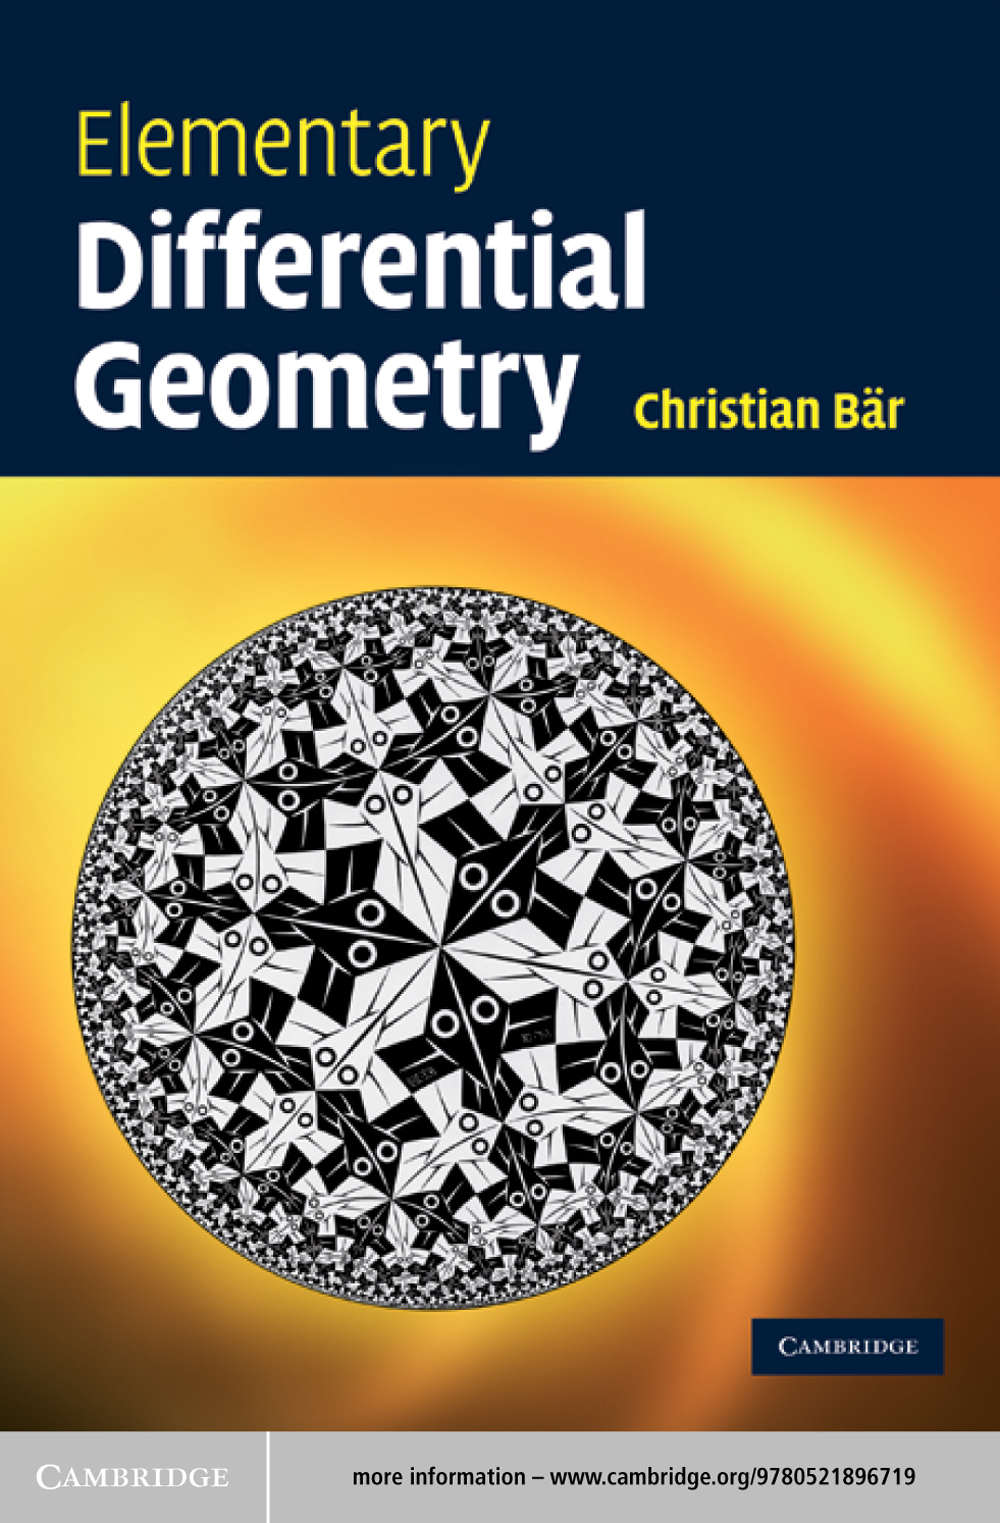 Elementary Differential Geometry